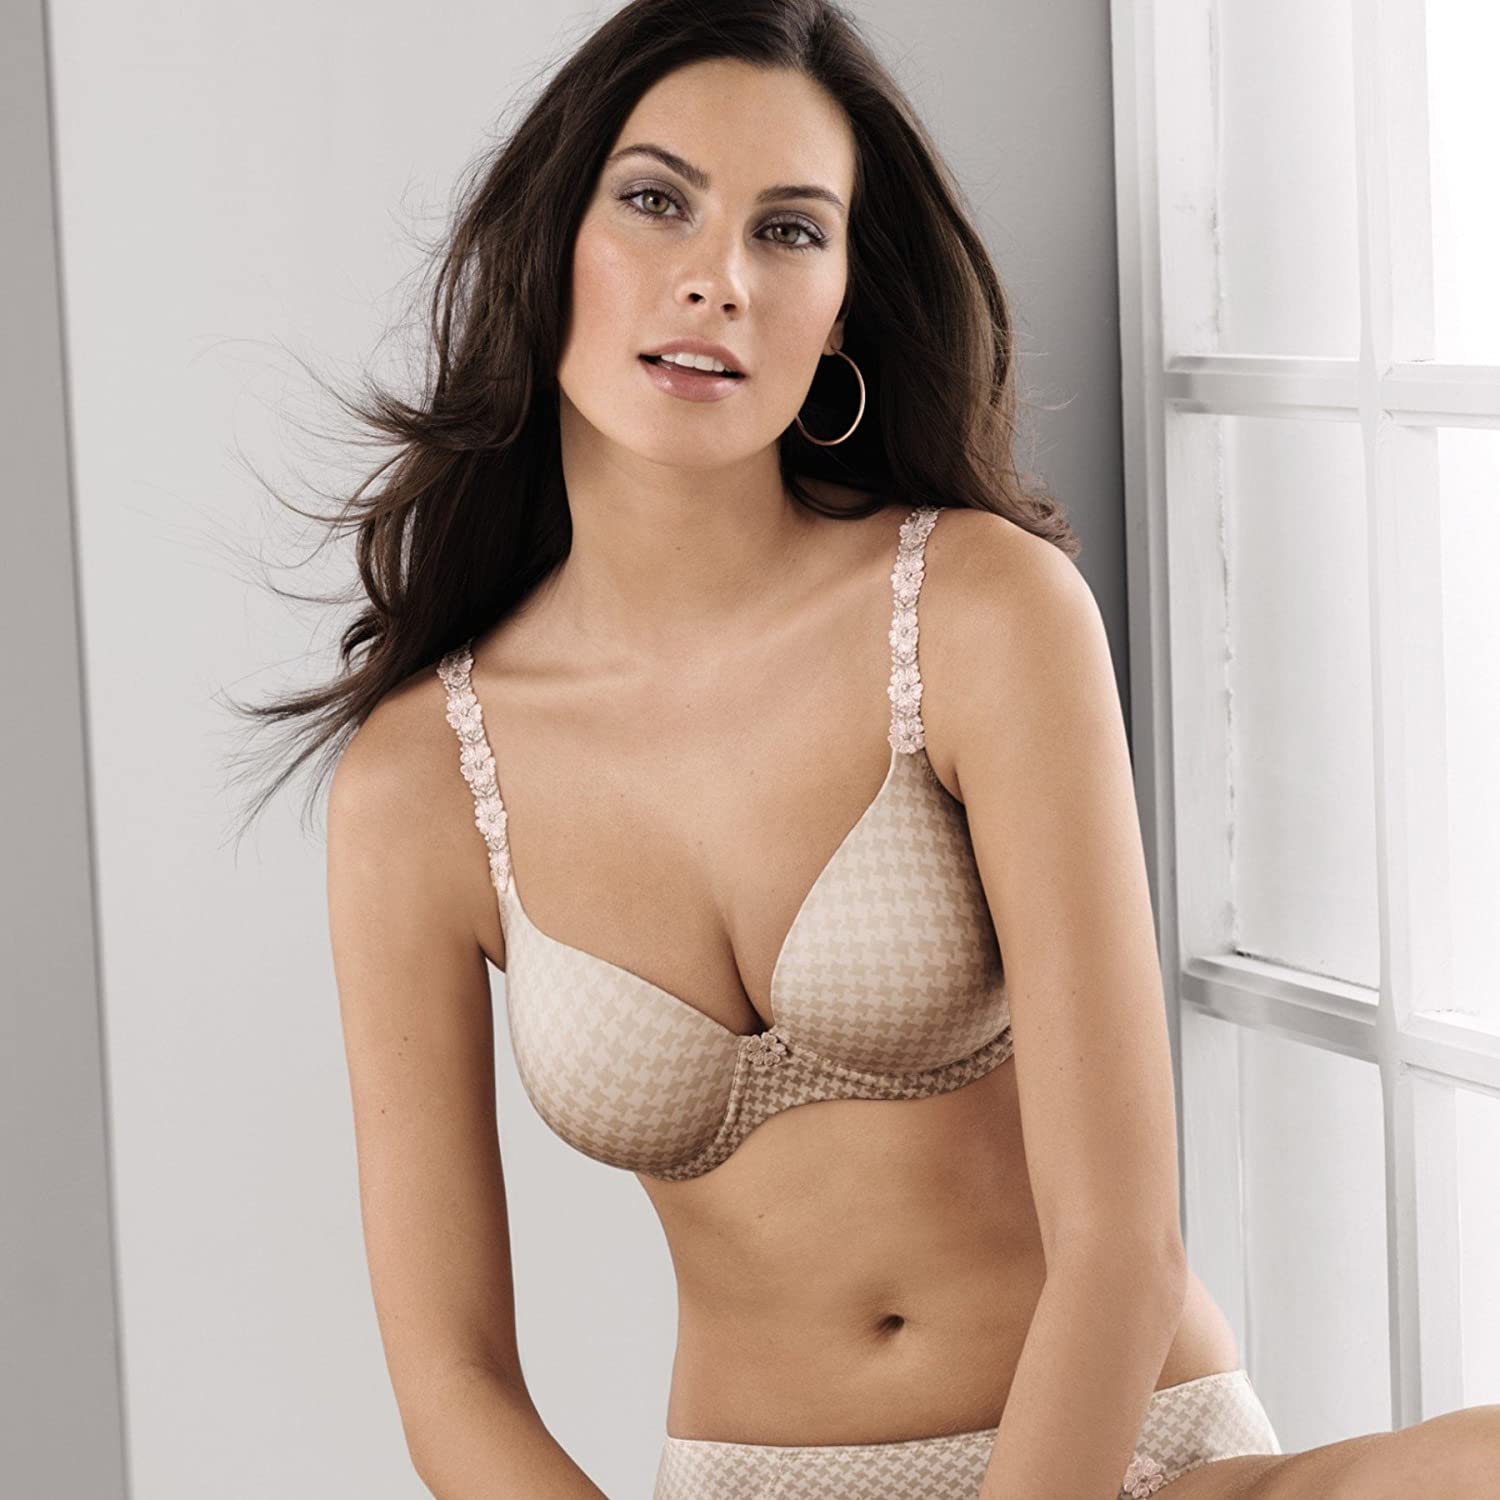 RosaFaia Josephine Womens Padded Contour Underwired Bra, 32G, Pearl Rose